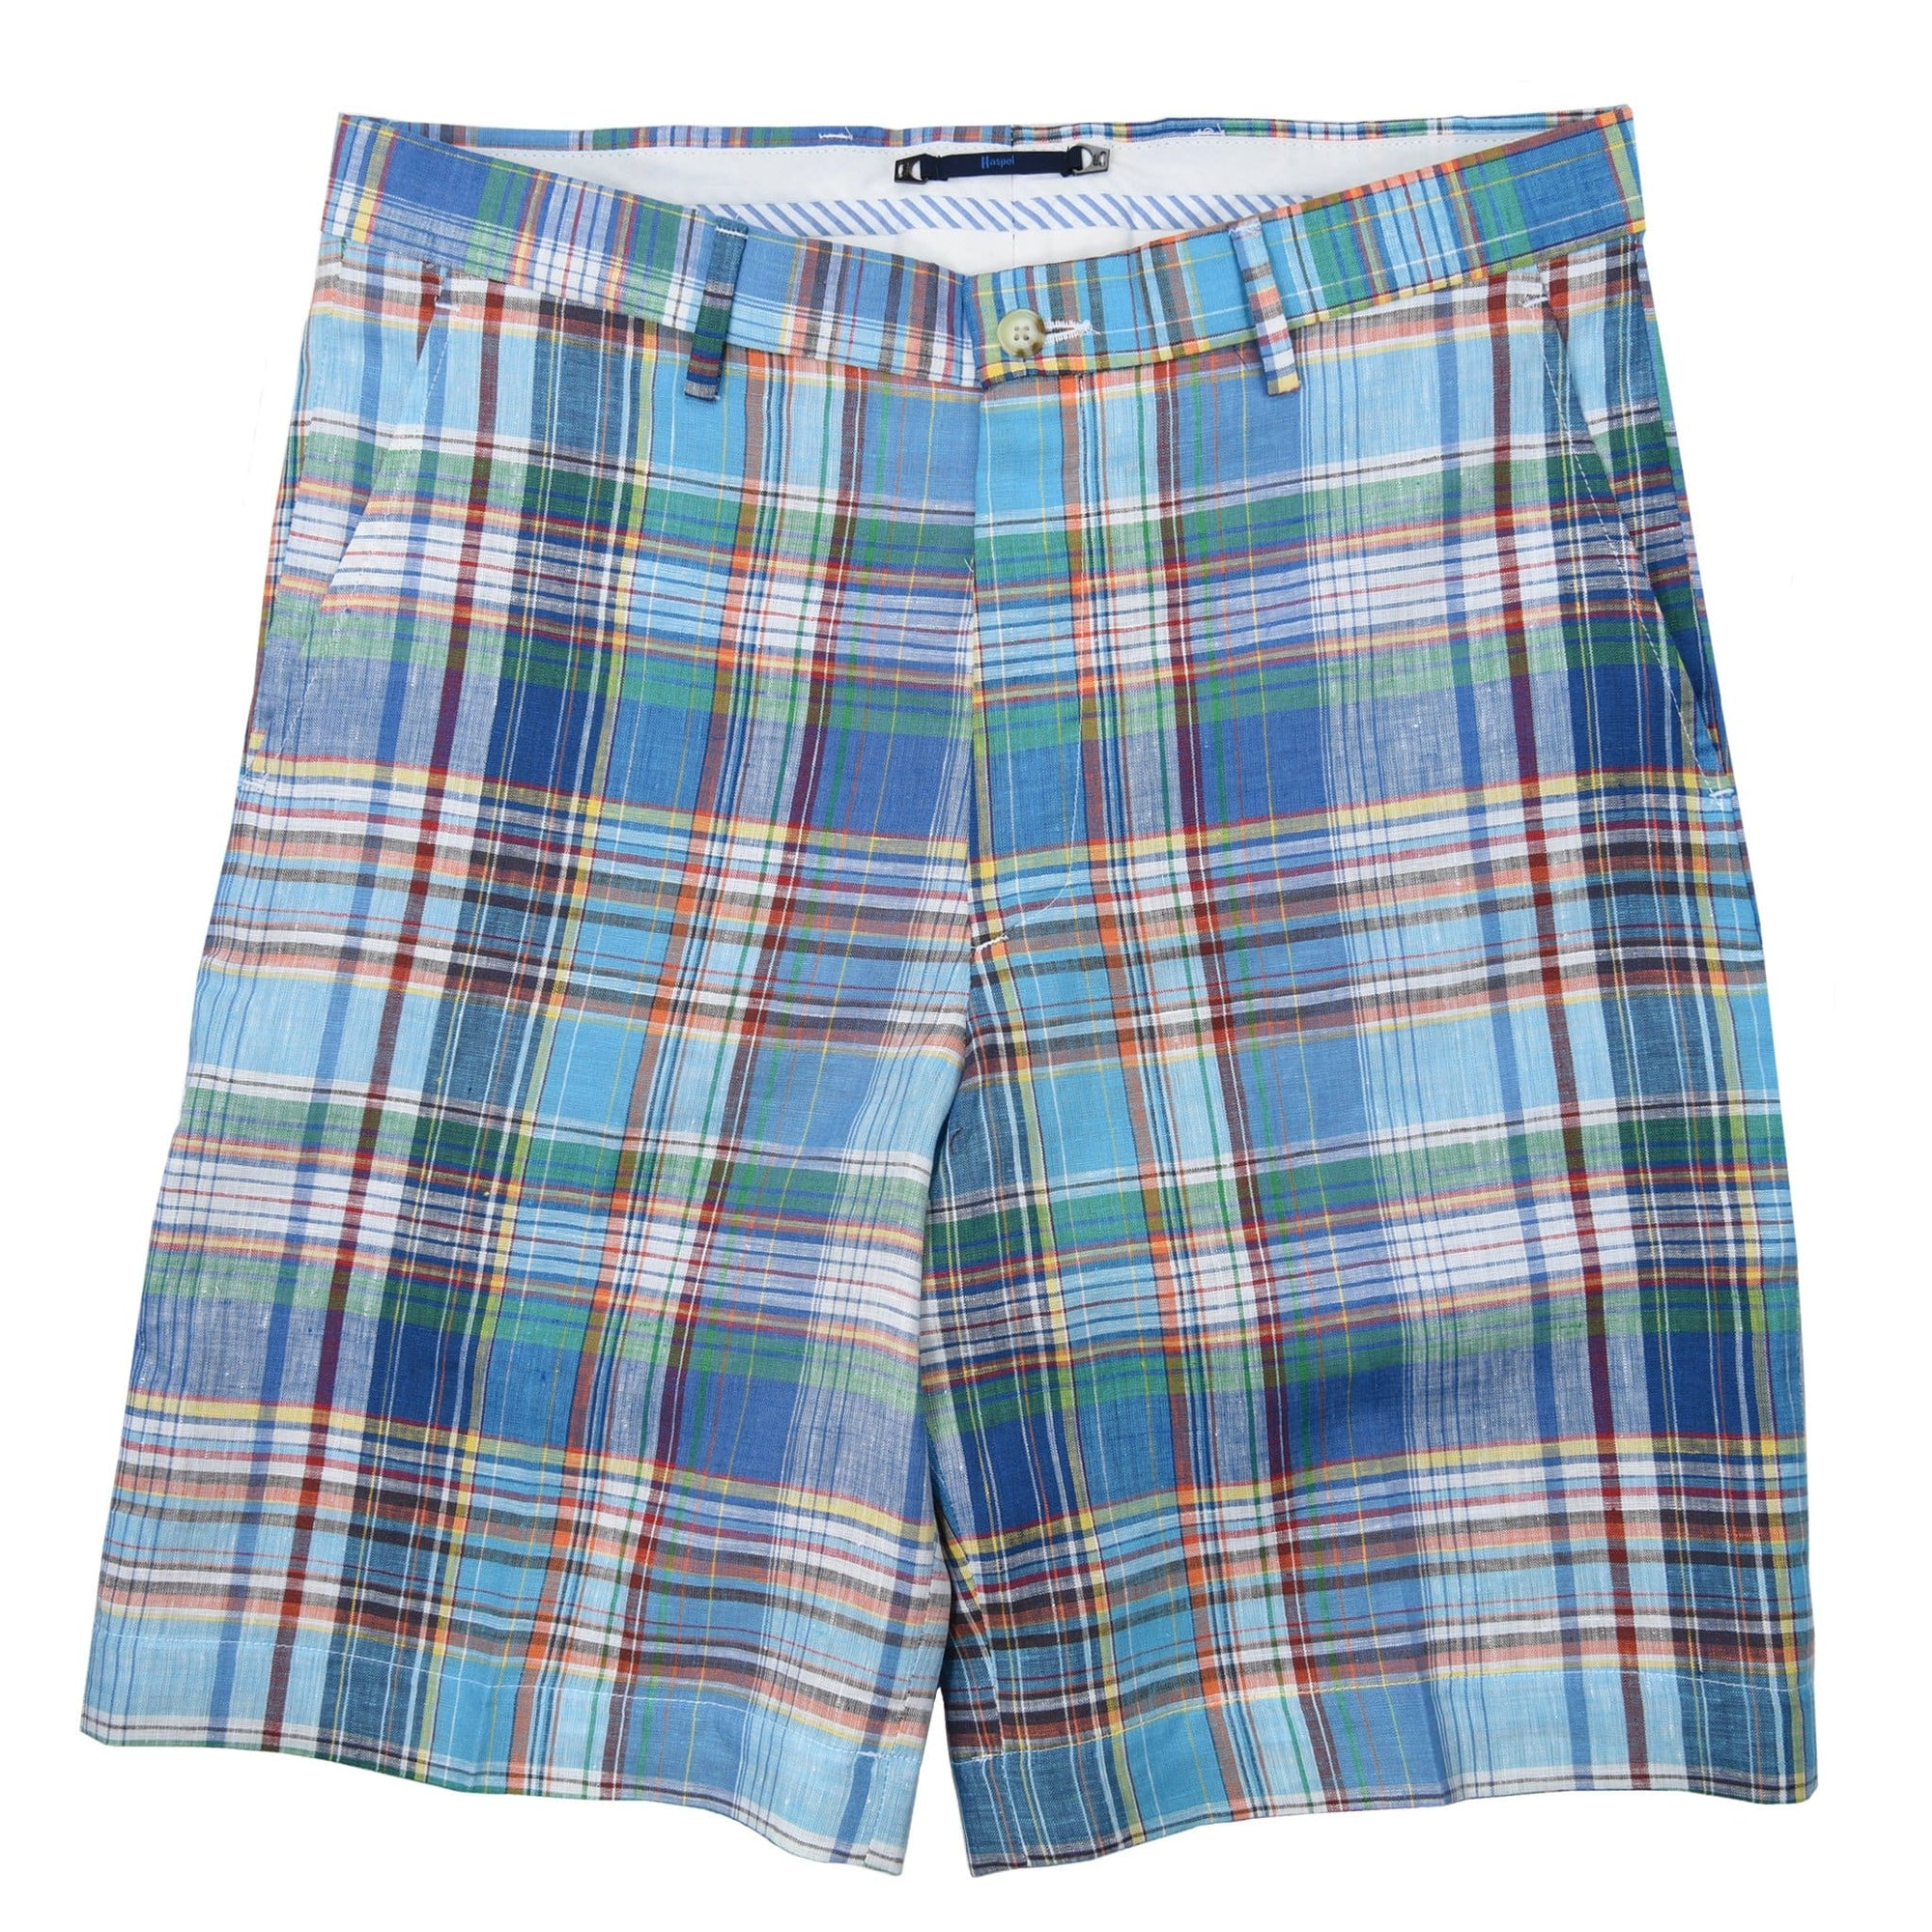 Felicity Multi-Color Plaid Short - Haspel Clothing